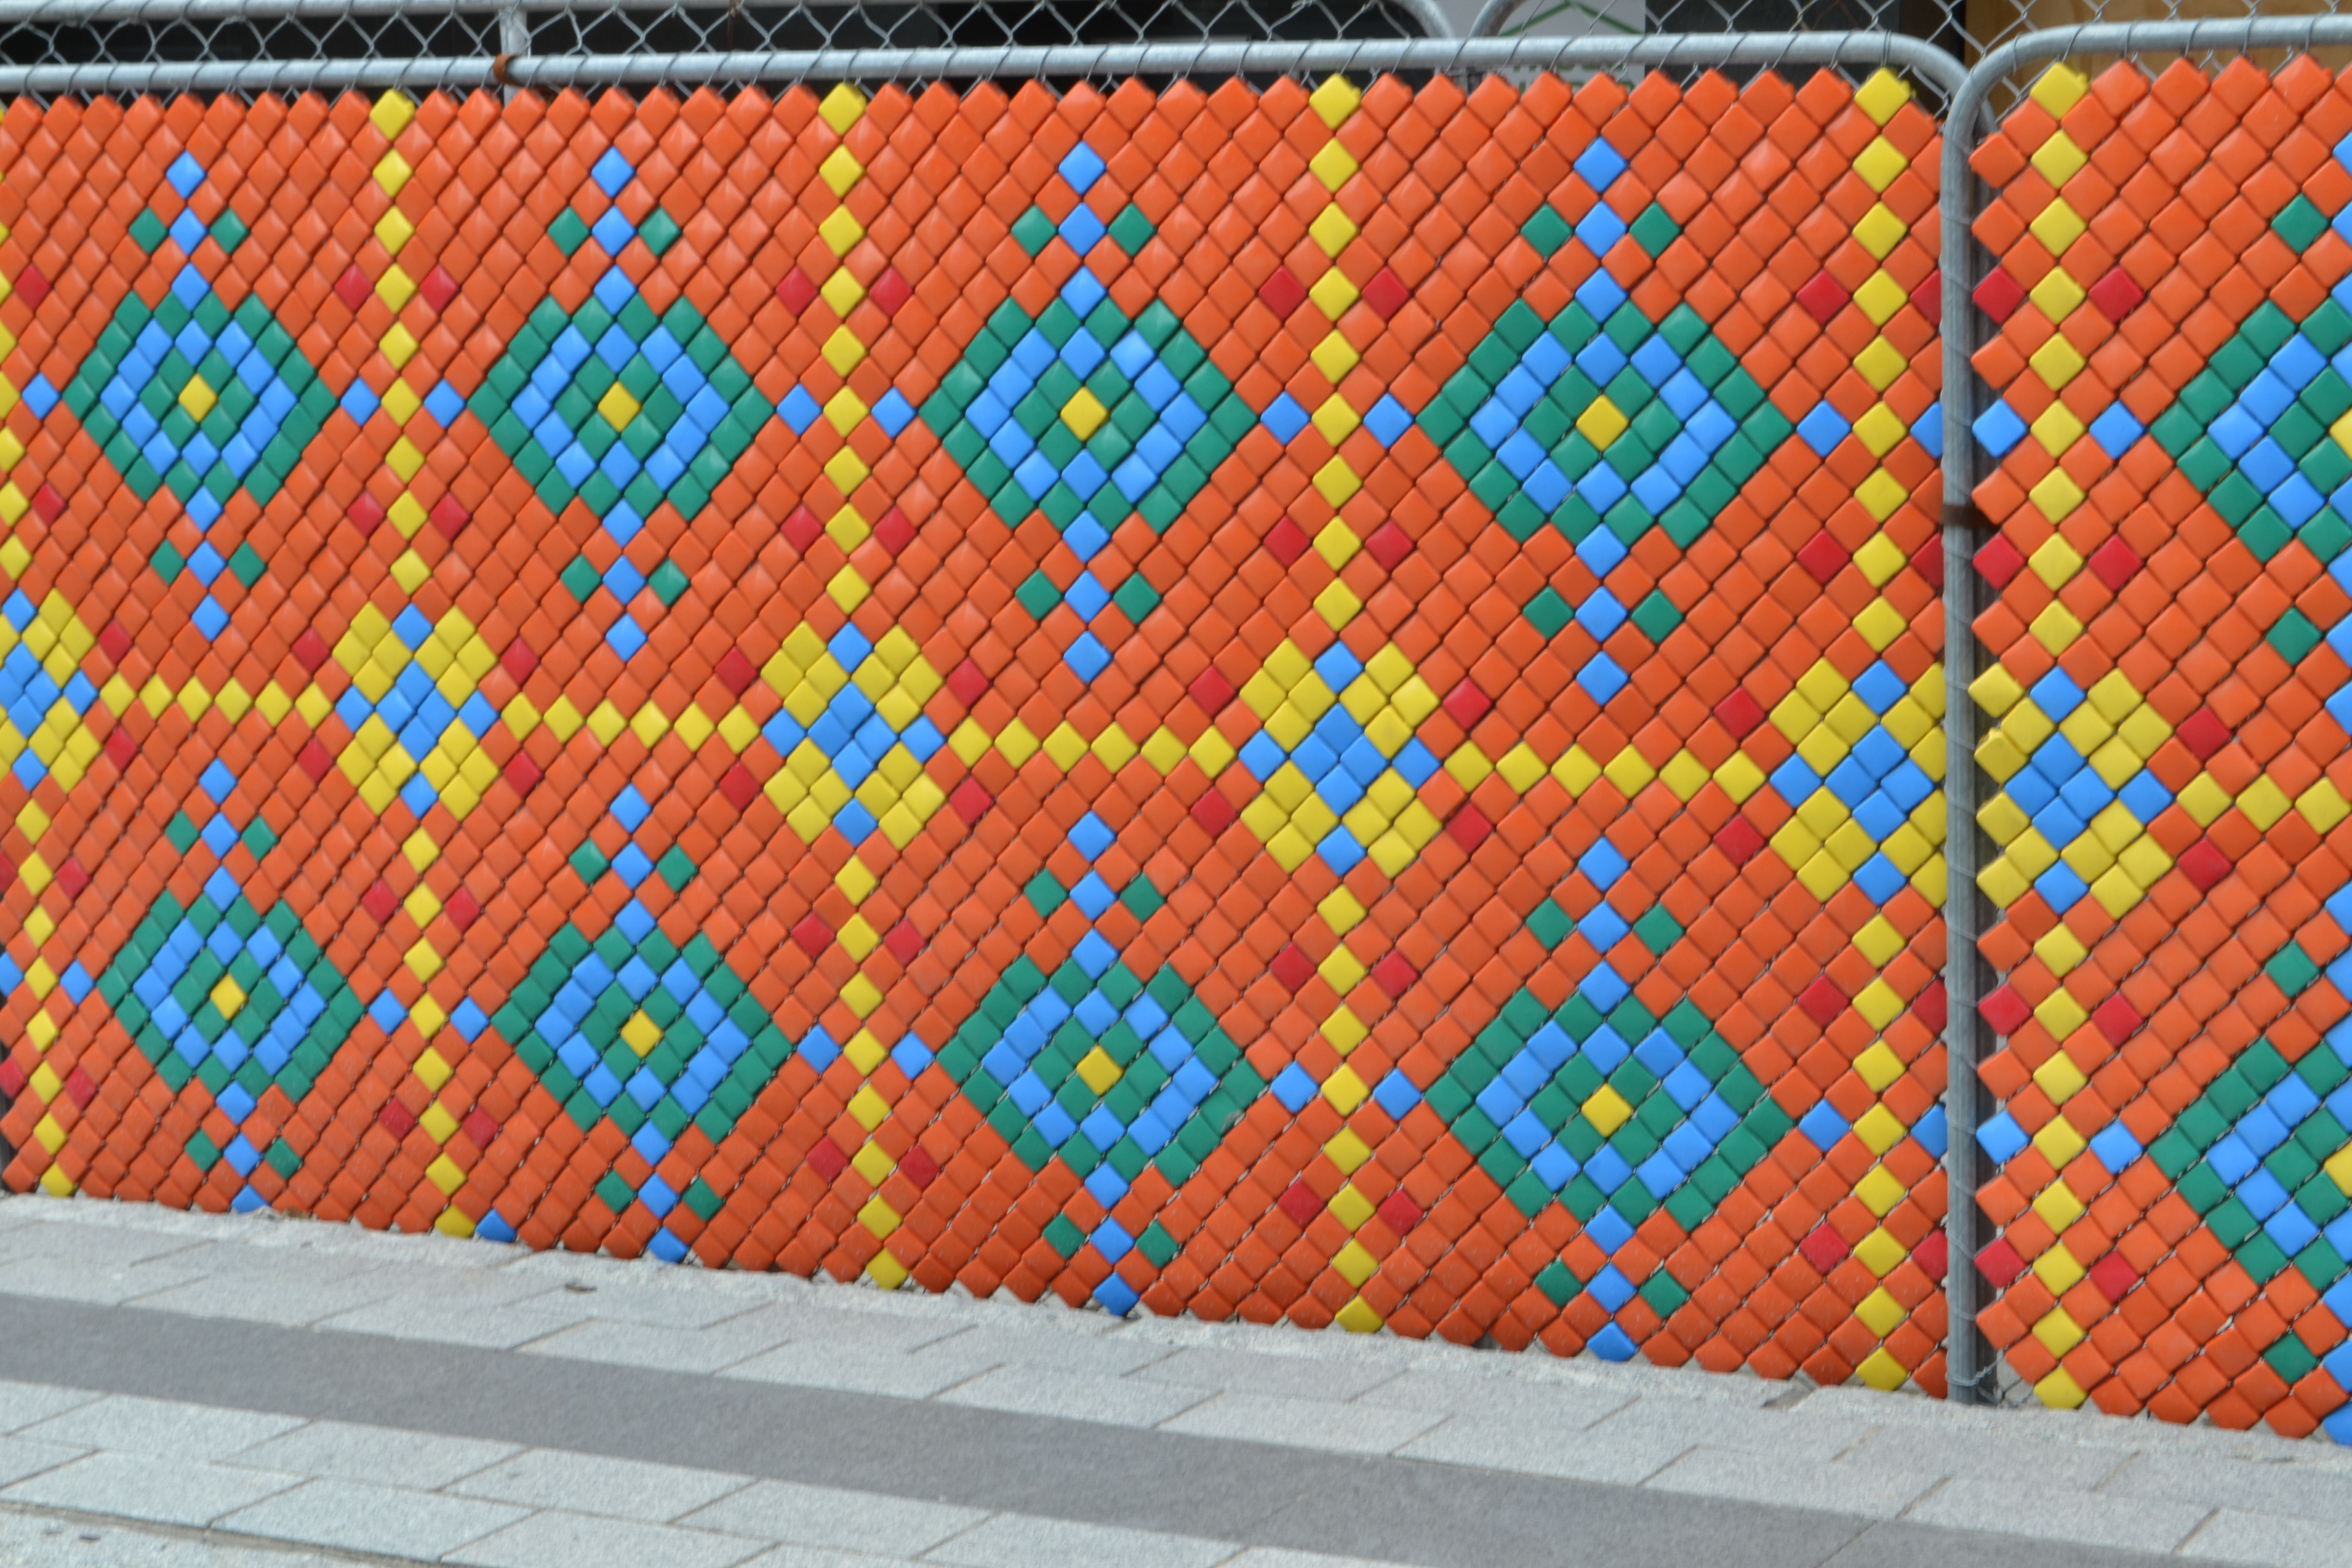 Chainlink fences are turned into art projects